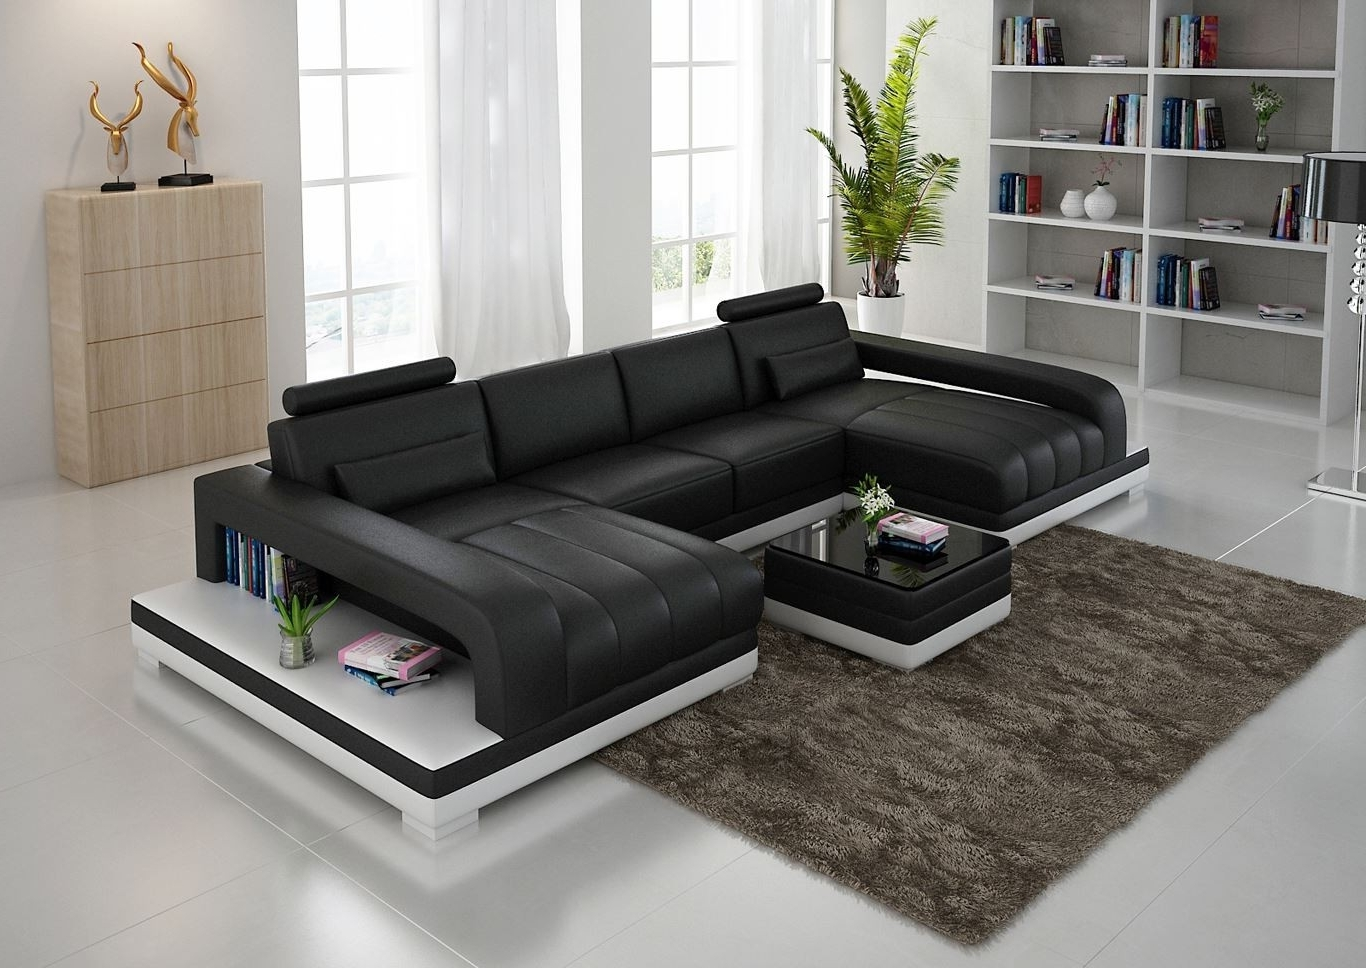 Latest Double Chaise Lounge Sofas Regarding Lounge Ii 2 Piece Left Arm Double Chaise Sectional Sofa Crate With (View 12 of 15)